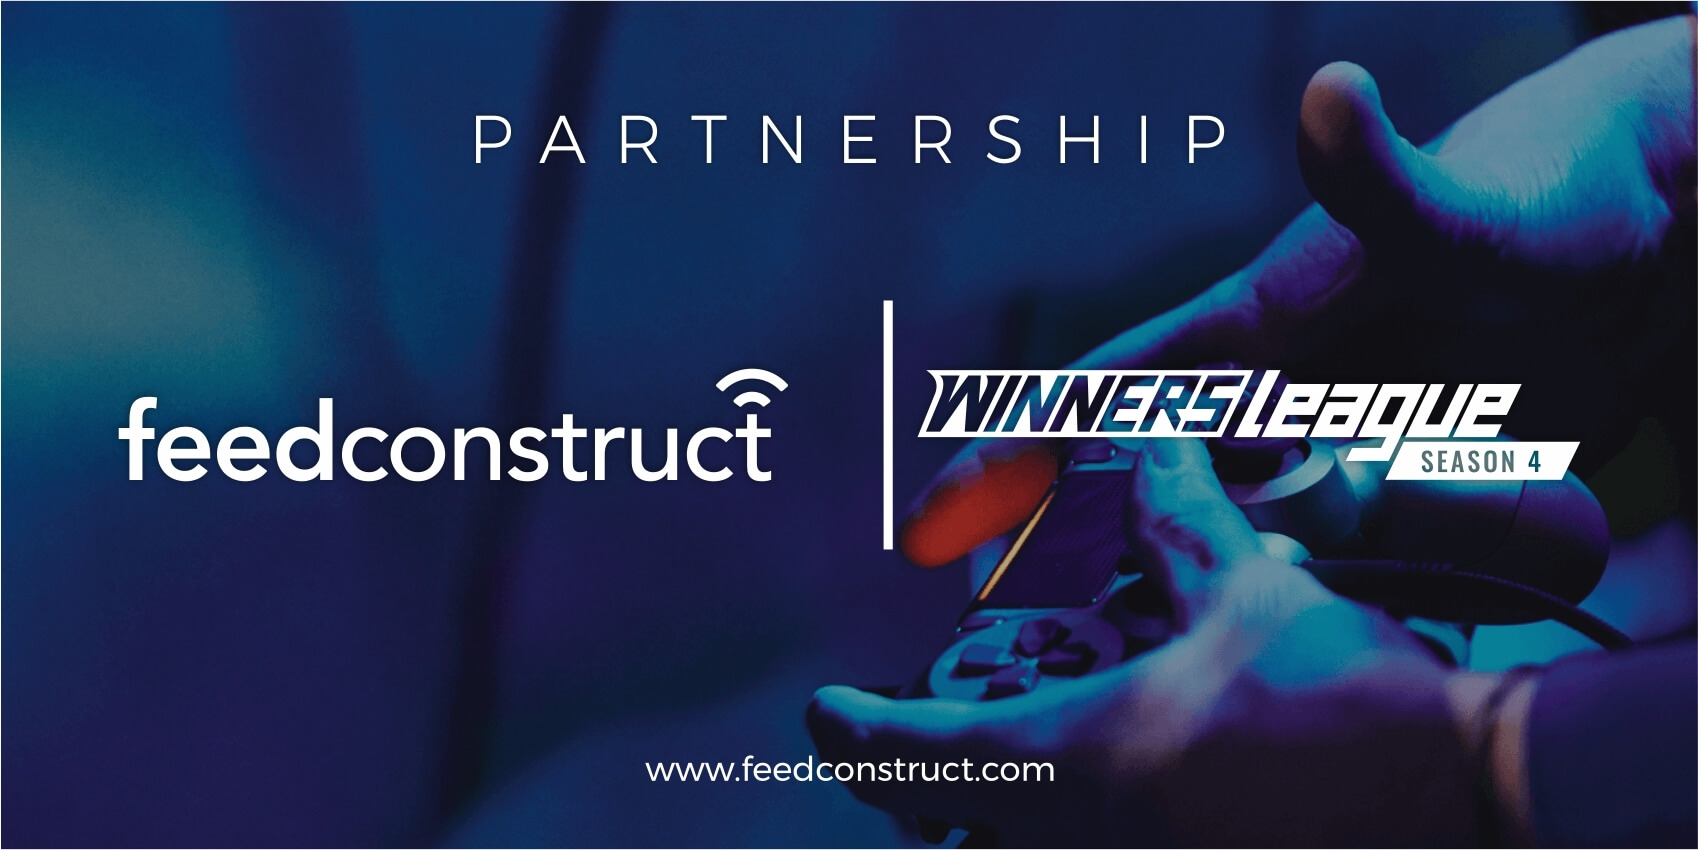 FeedConstruct becomes data partner of the WINNERS League